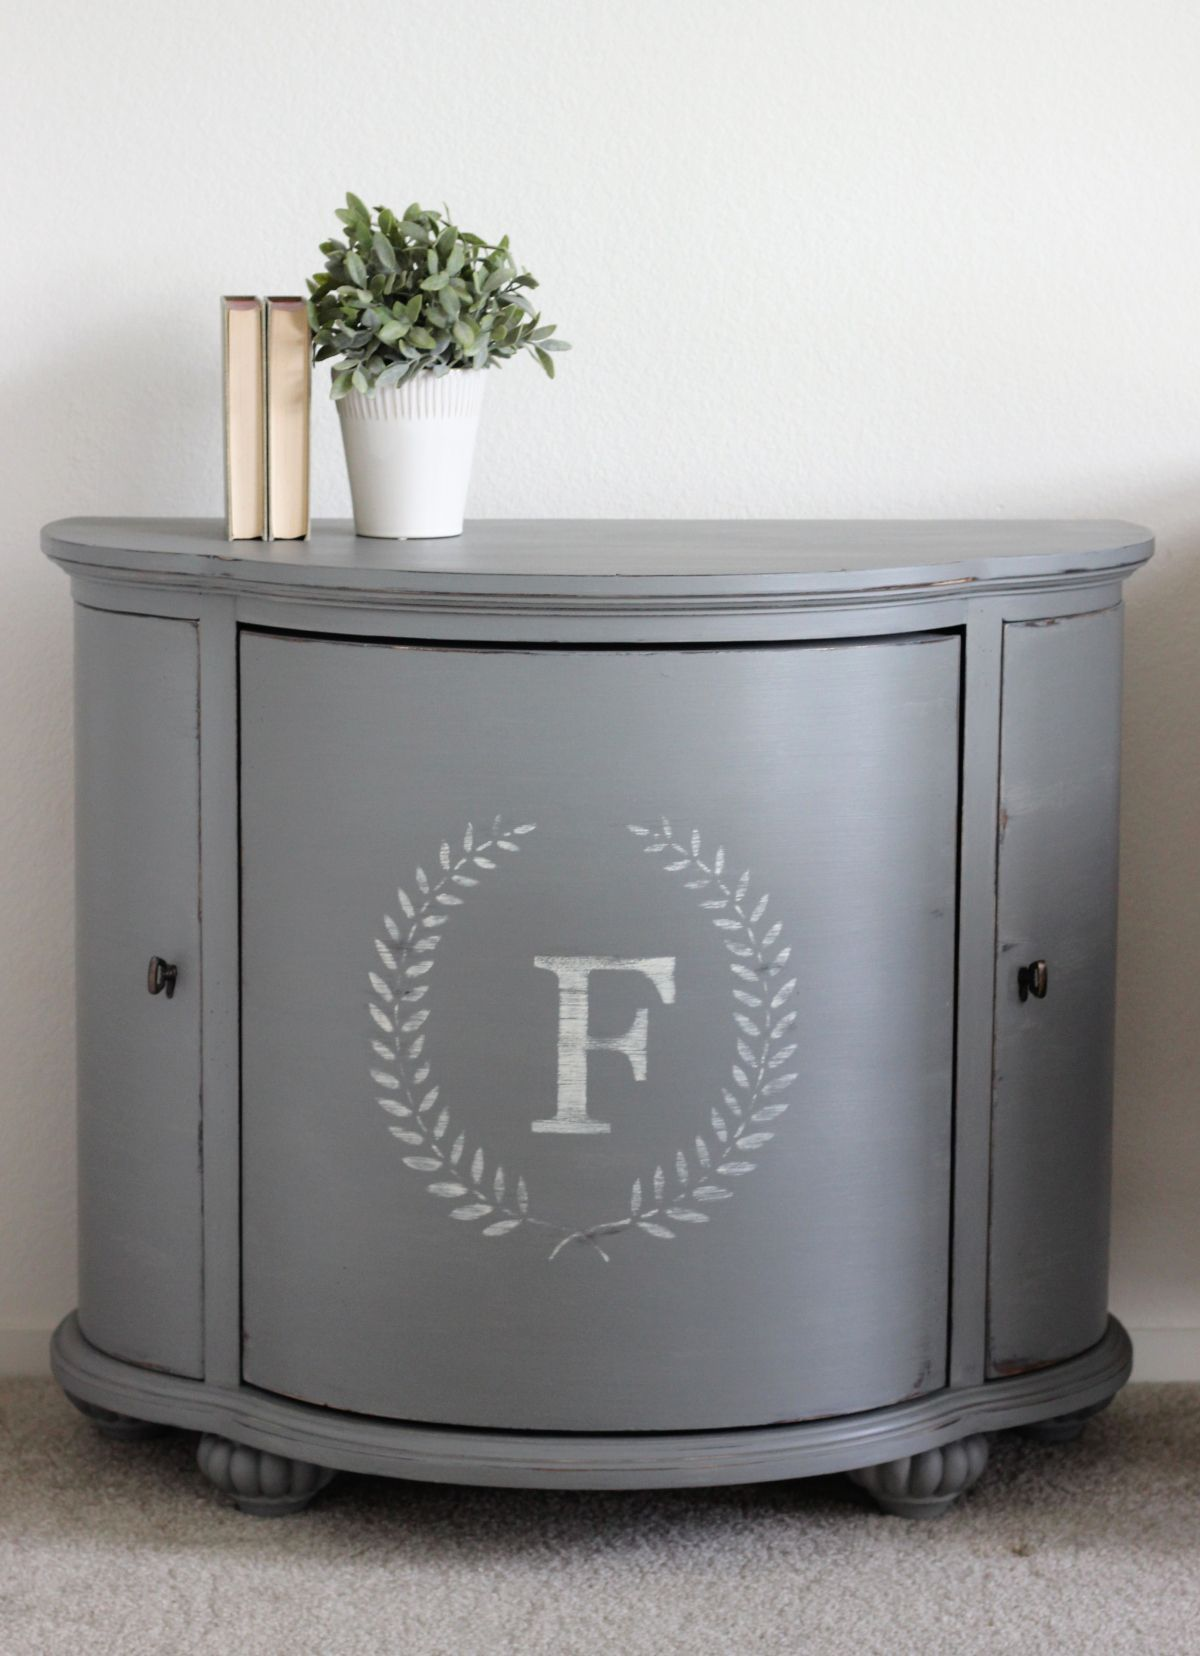 Rustoleum Country Gray Chalk Paint Must See The Before Paintedfurniture Rustoleum Chalk Paint Rustoleum Chalked Rustoleum